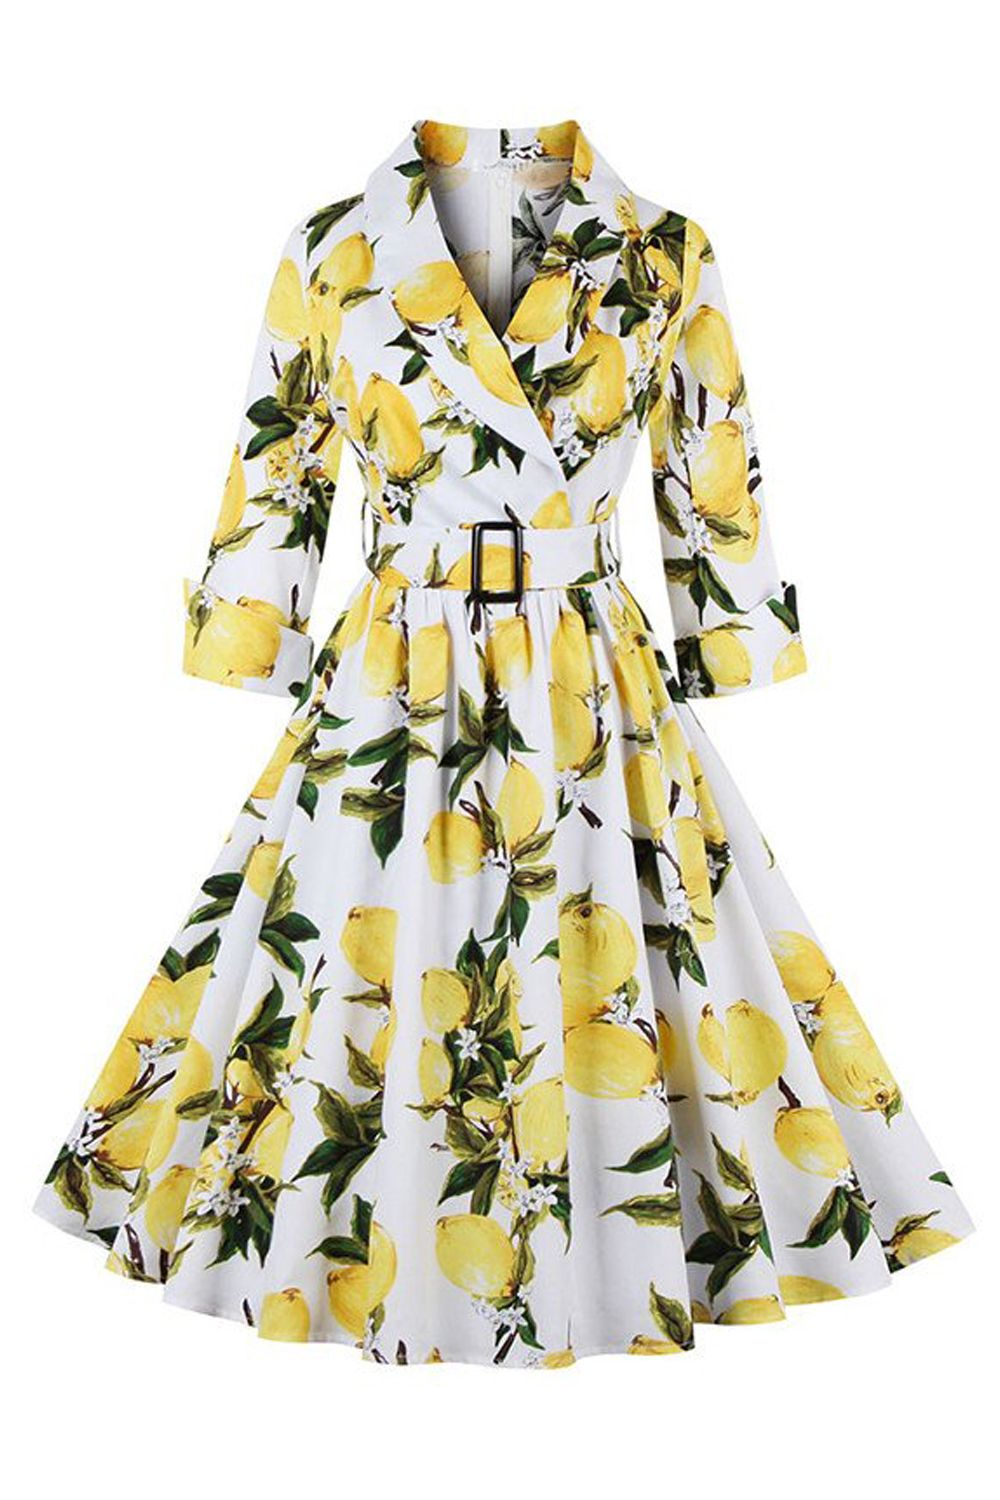 1950 S Vintage Swing Dress Covered With Lemon Pattern Featuring Turn Down Collar With V Neckline 3 4 Lemon Print Dress Womens Vintage Dresses Vintage Dresses [ 1500 x 1000 Pixel ]